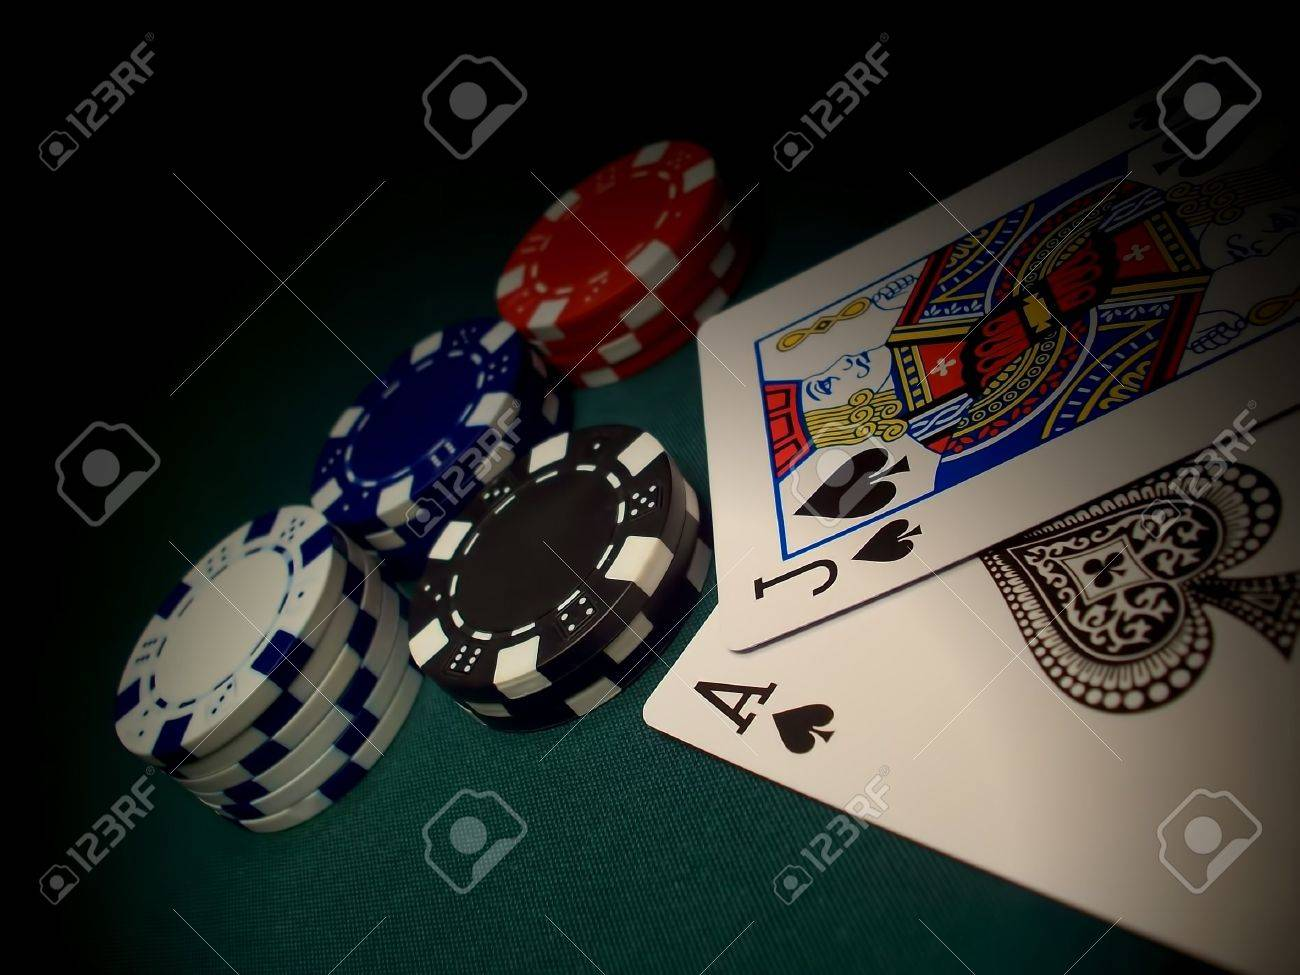 Red, Blue, White, Black Poker Chips On A Green Felt Gaming Table.